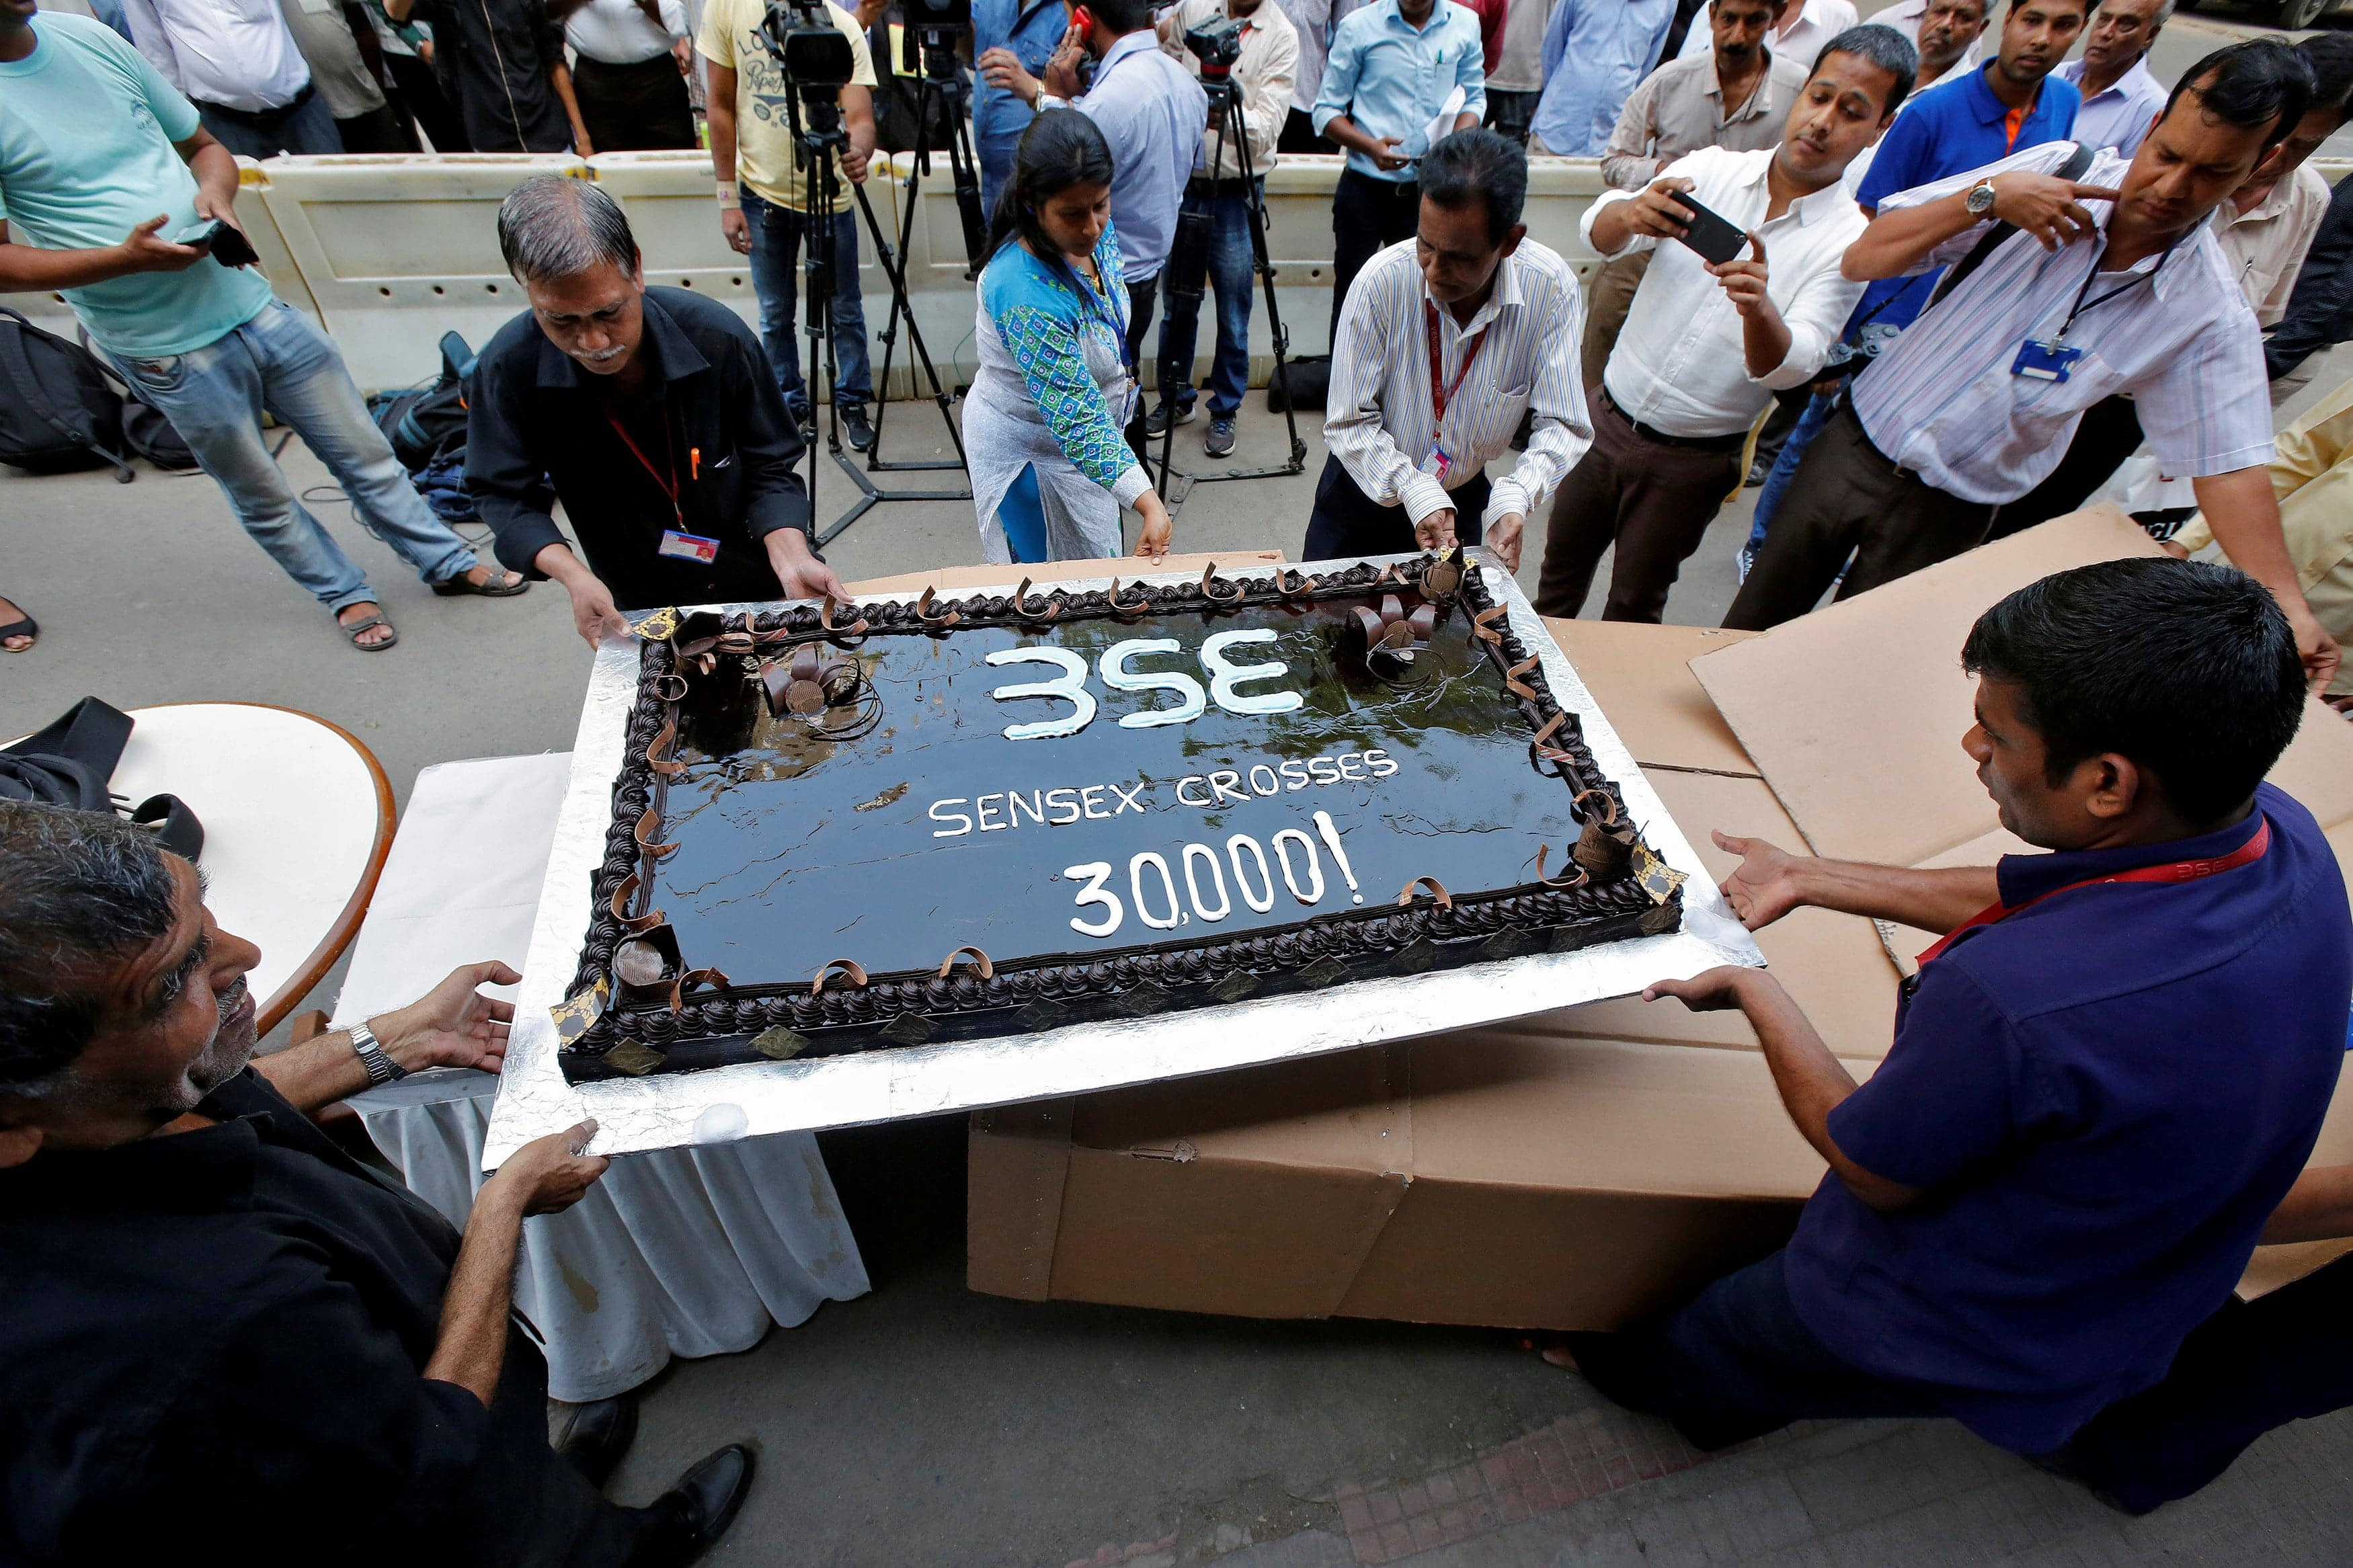 FILE PHOTO: Employees of the Bombay Stock Exchange (BSE) carry a cake outside the building for the celebrations marking the Sensex index rising over 30,000, in Mumbai, India April 26, 2017. REUTERS/Shailesh Andrade/File Photo